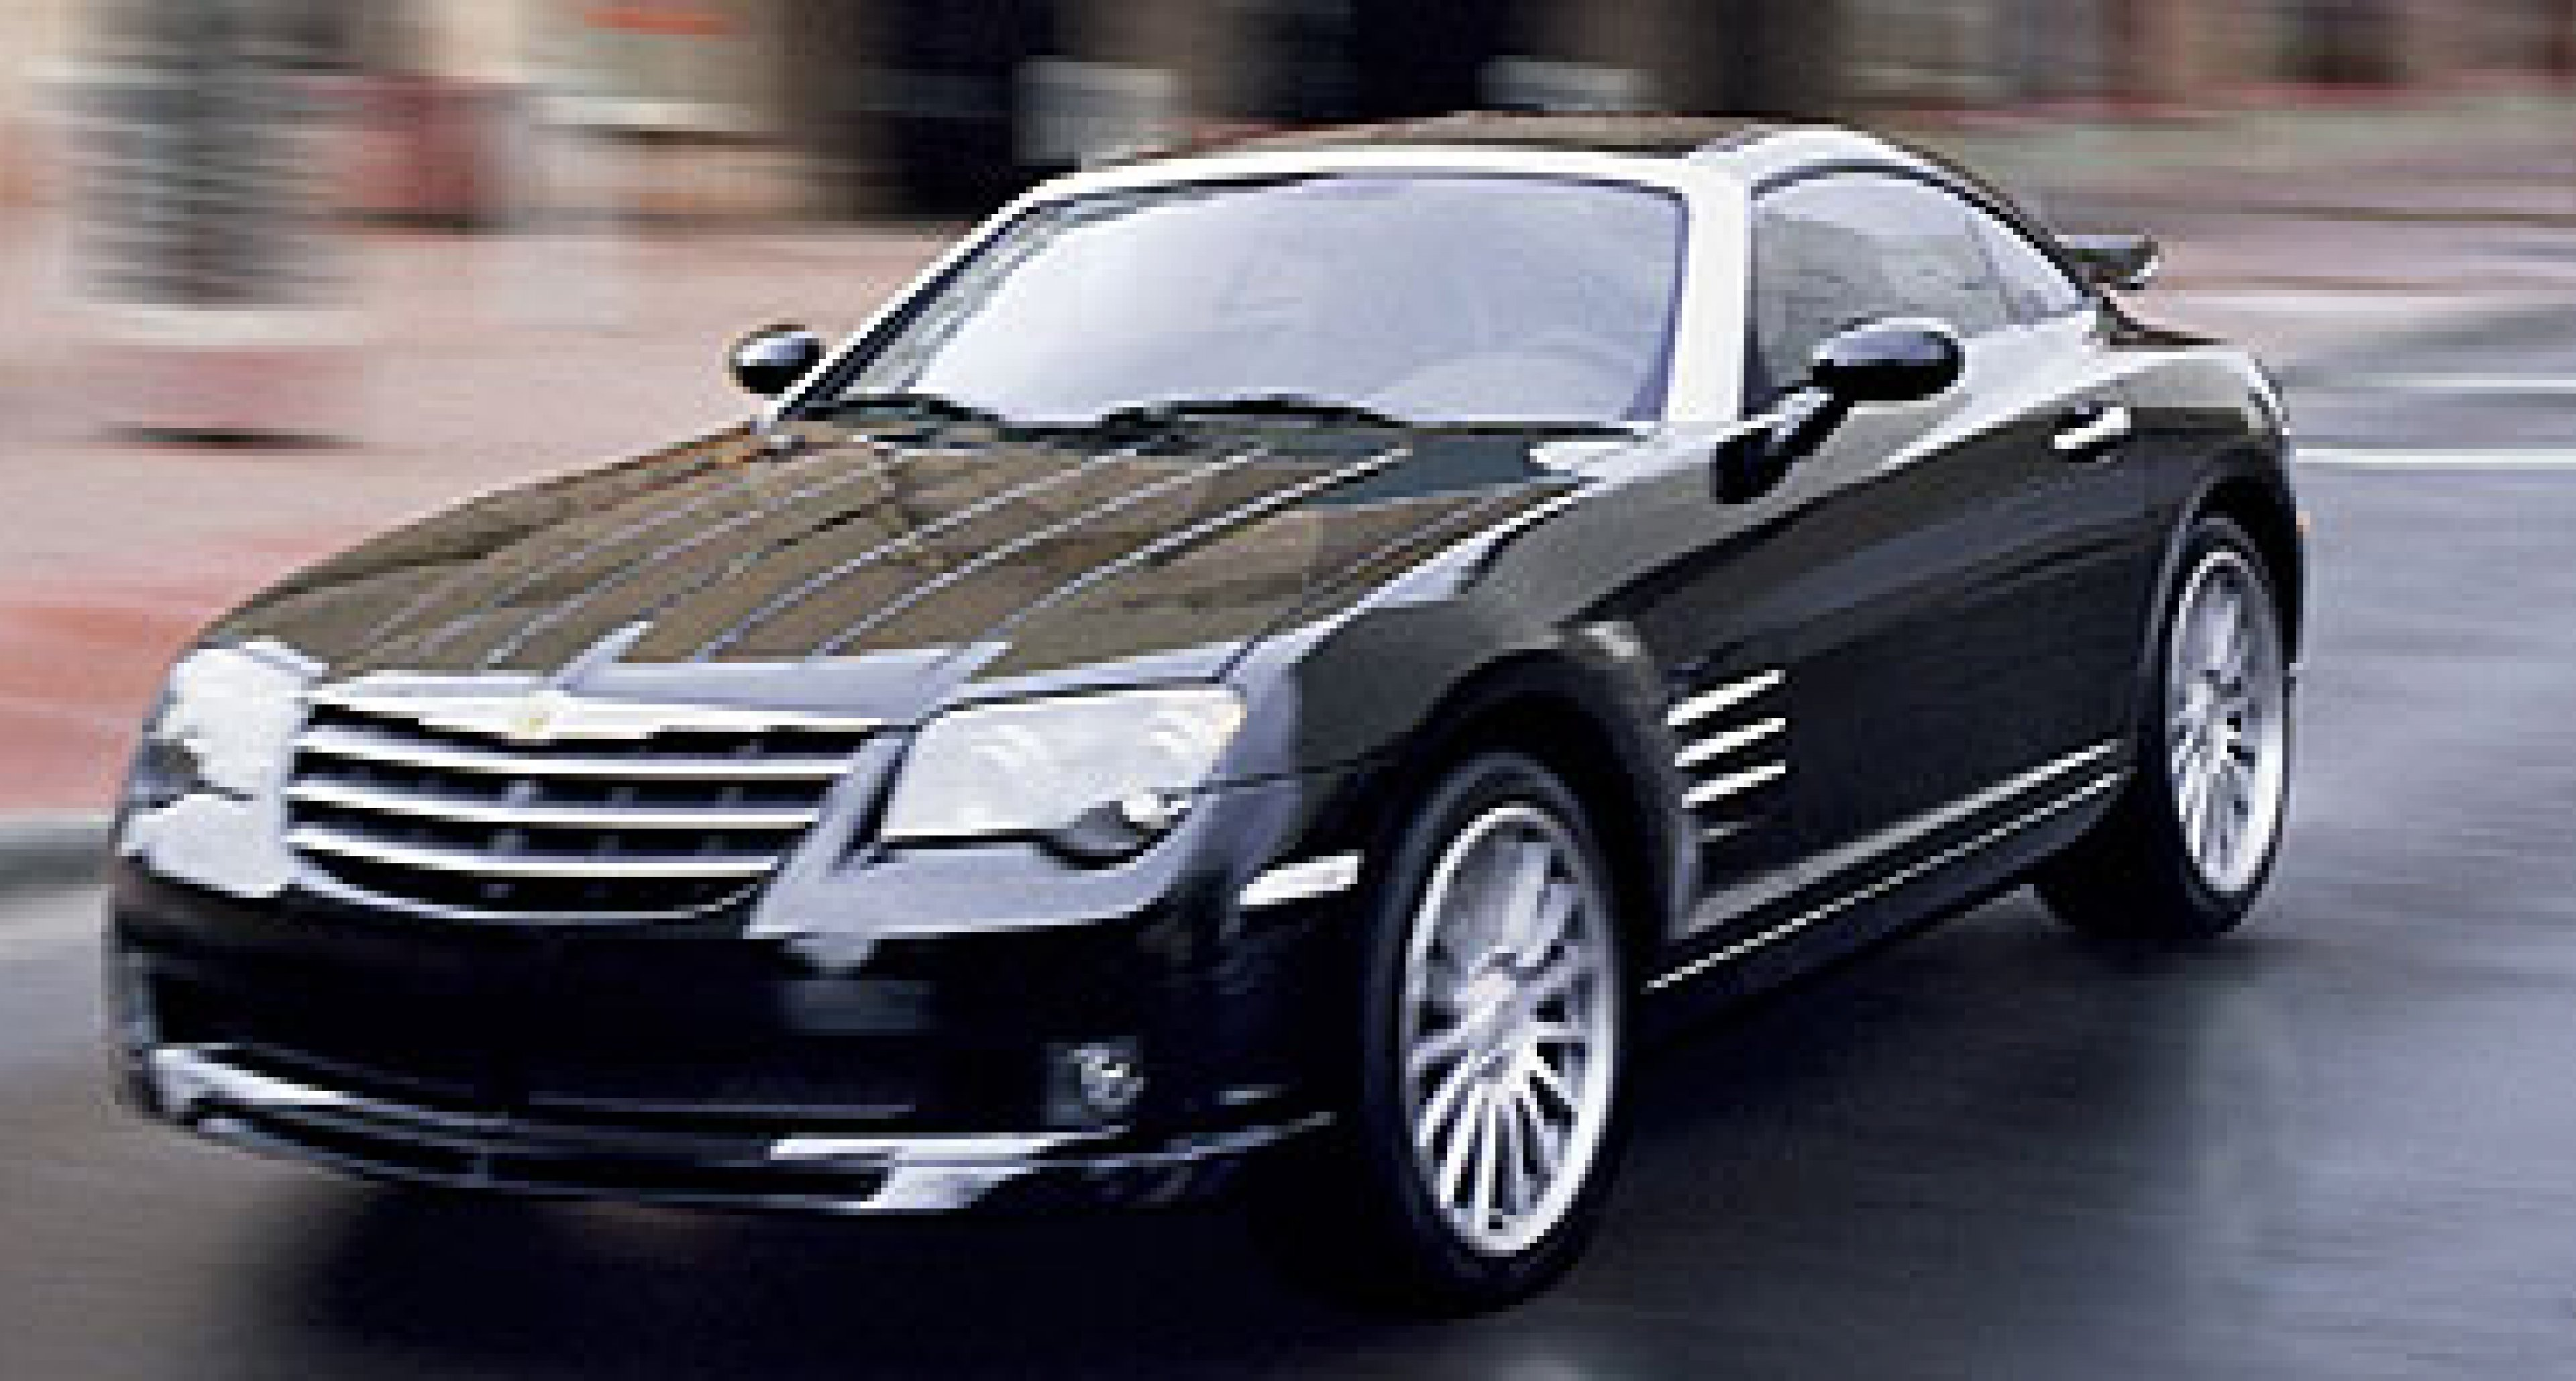 Chrysler Crossfire SRT-6: Erster Chrysler mit SRT-Emblem